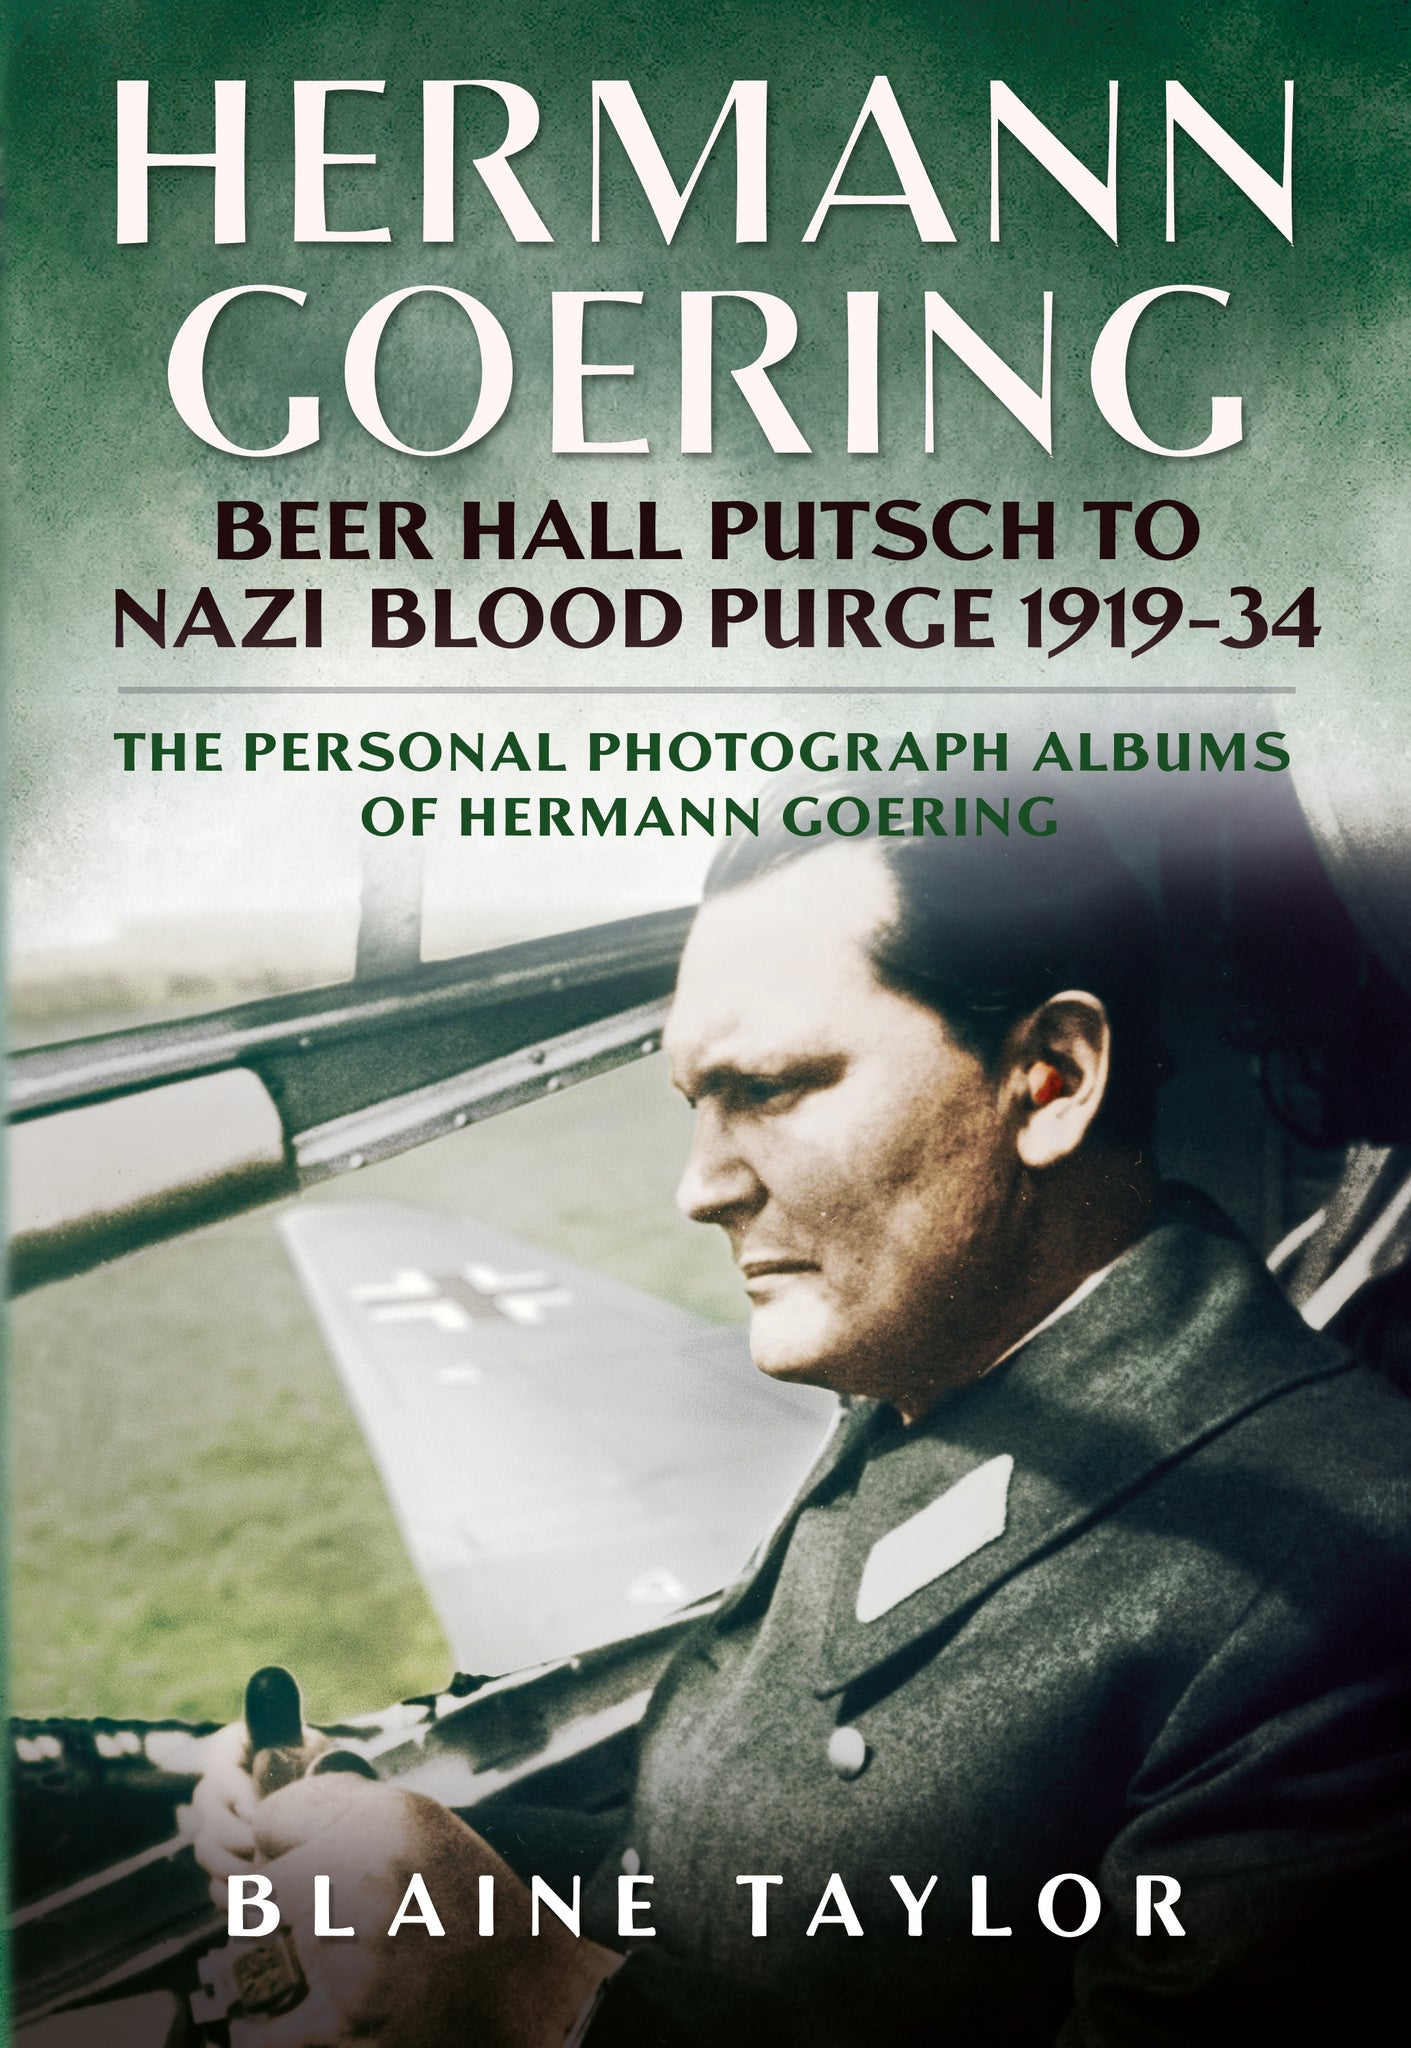 Hermann Goering - Beer Hall Putsch to Nazi Blood Purge 1919-34: The Personal Photographic Albums of Hermann Goering